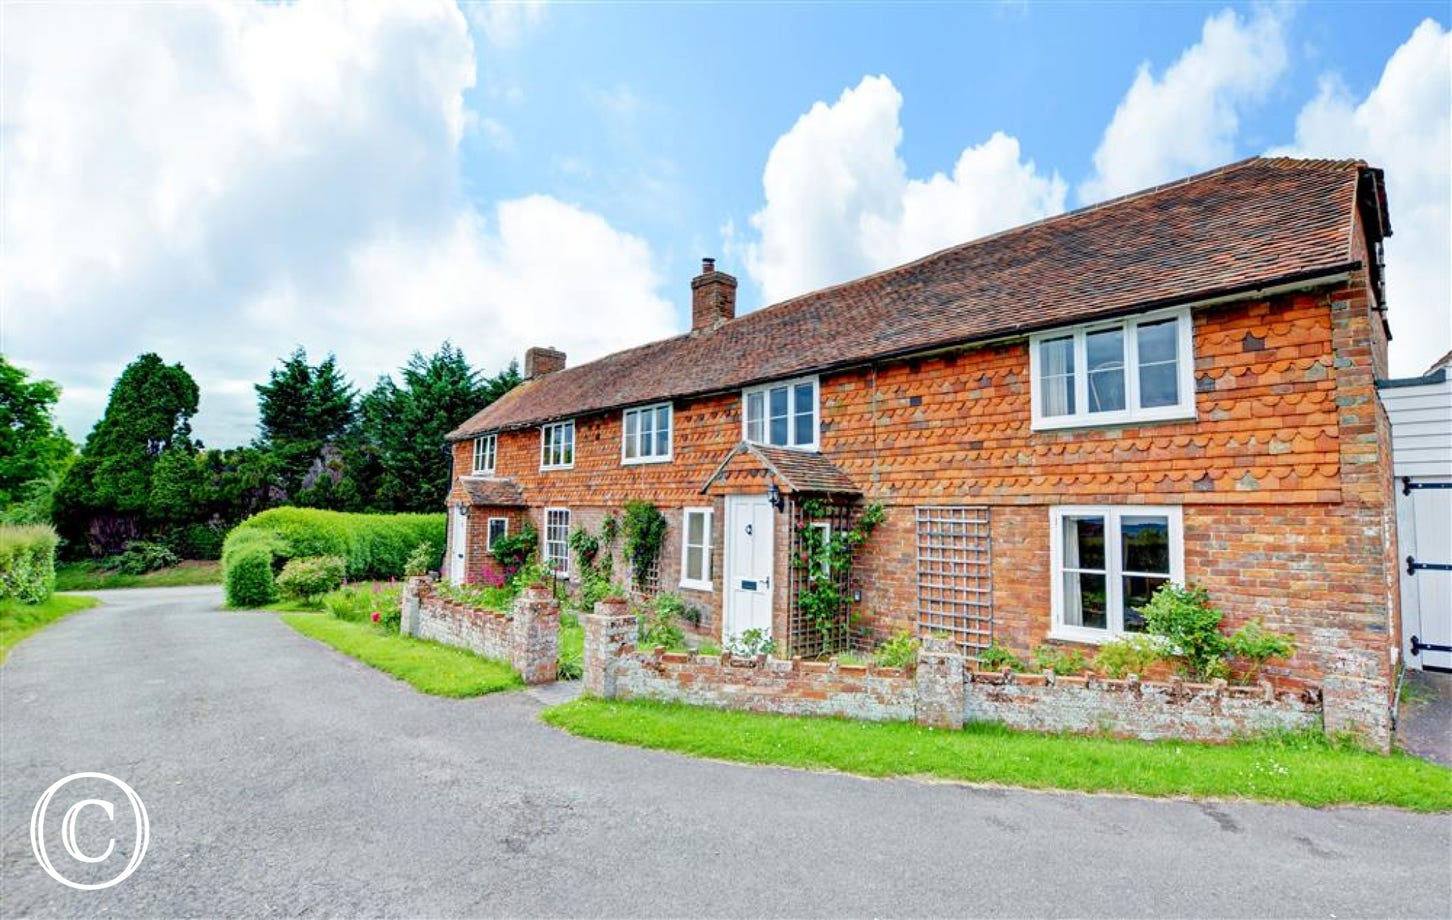 Beautiful cottage situated in the picturesque village of Woodchurch